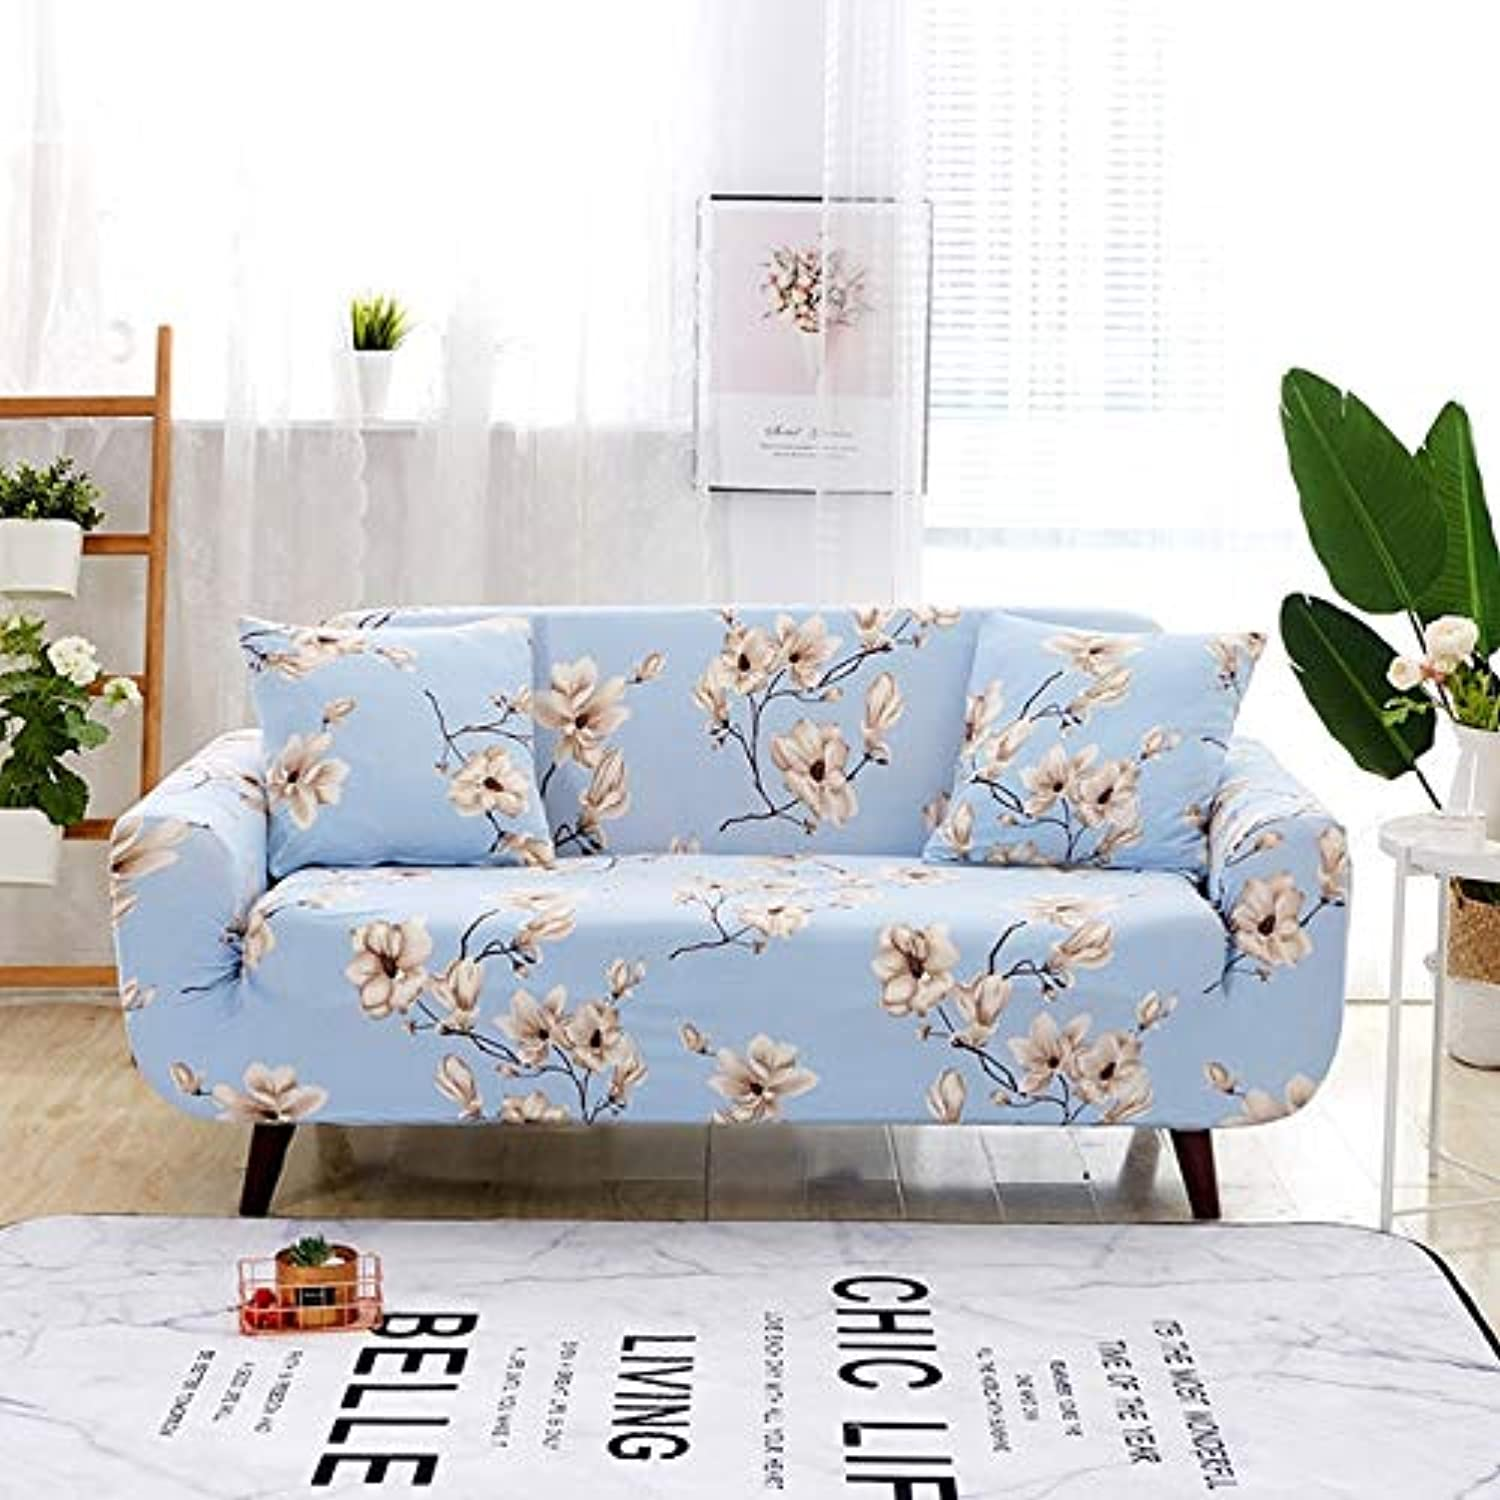 Farmerly Floral Printing Elastic Sofa Cover Tight Wrap All-Inclusive Slip-Resistant Furniture Slipcover Soft Sofa Towel 1 2 3 4-seater   color 16, Single-Seater